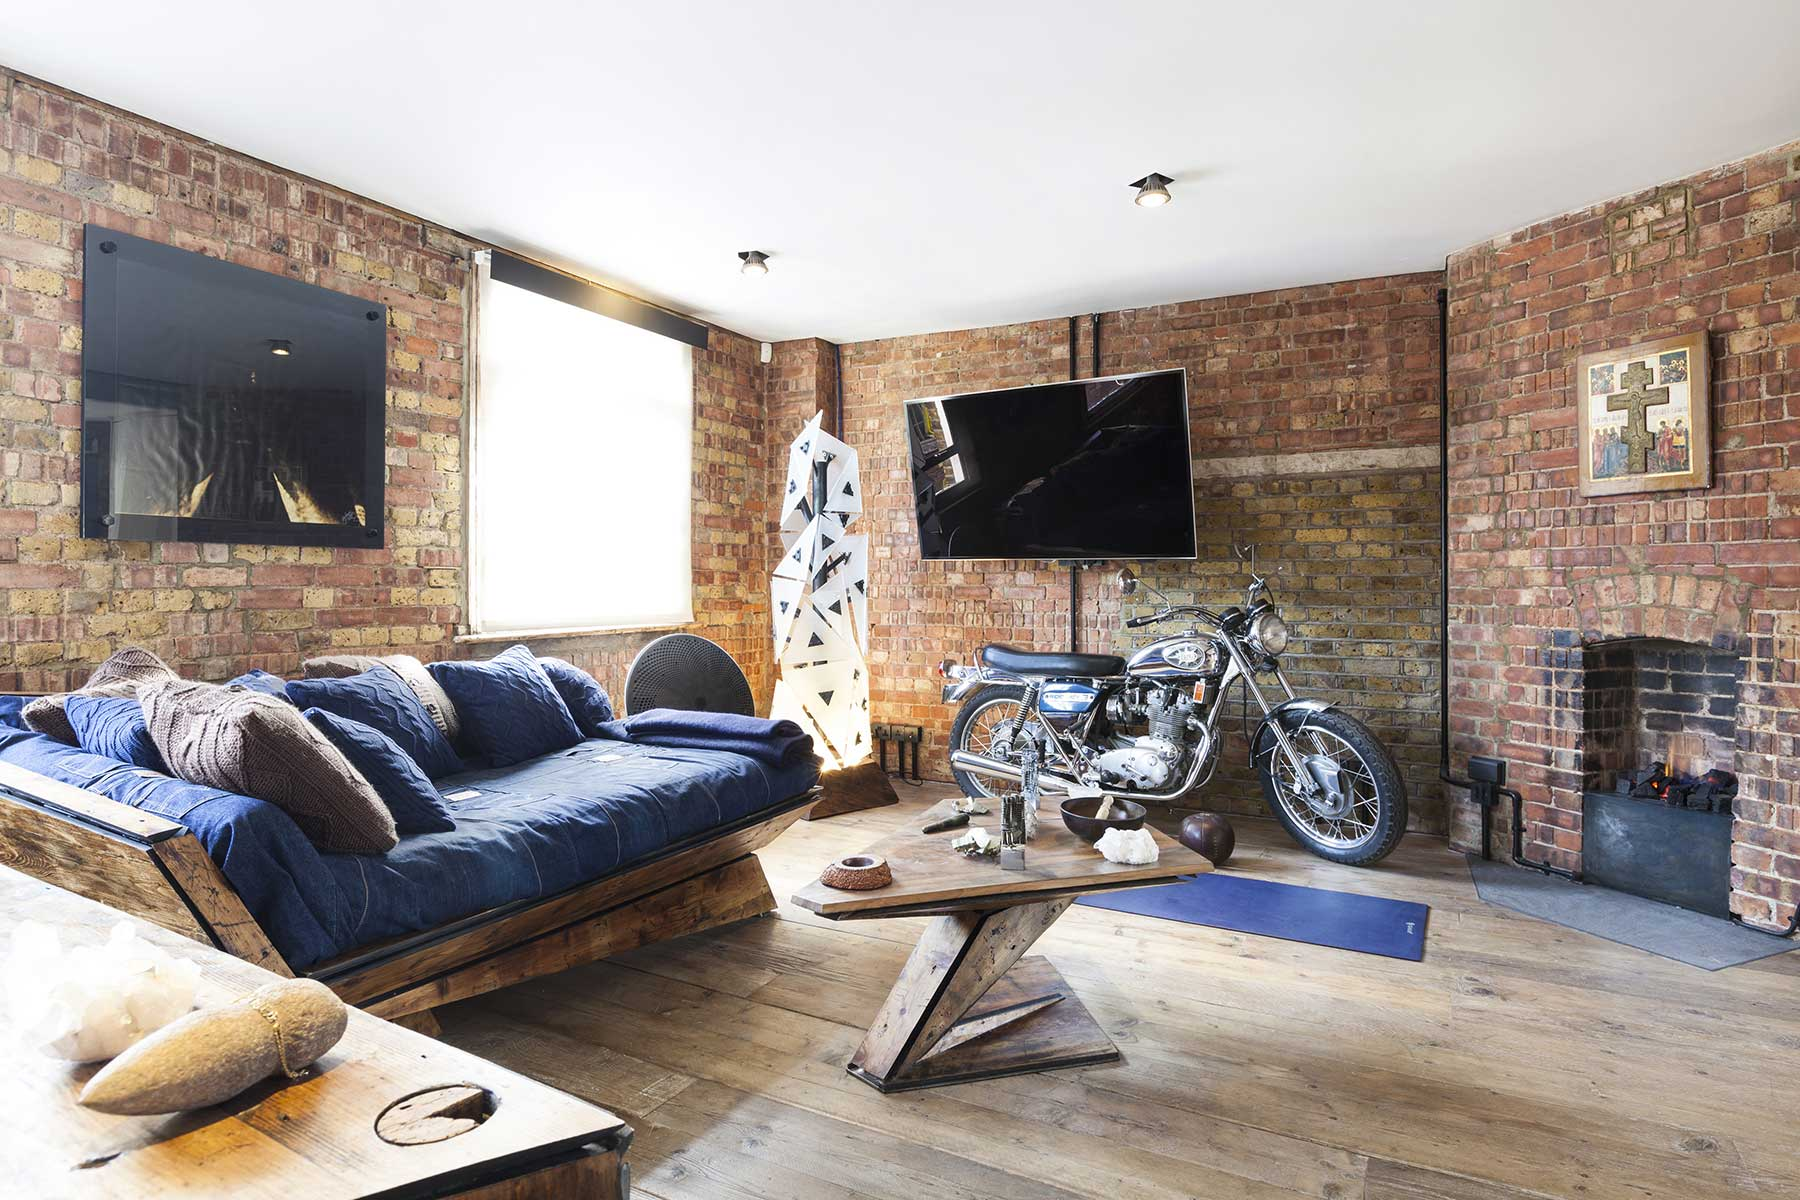 loft avec moto dans le salon. Black Bedroom Furniture Sets. Home Design Ideas